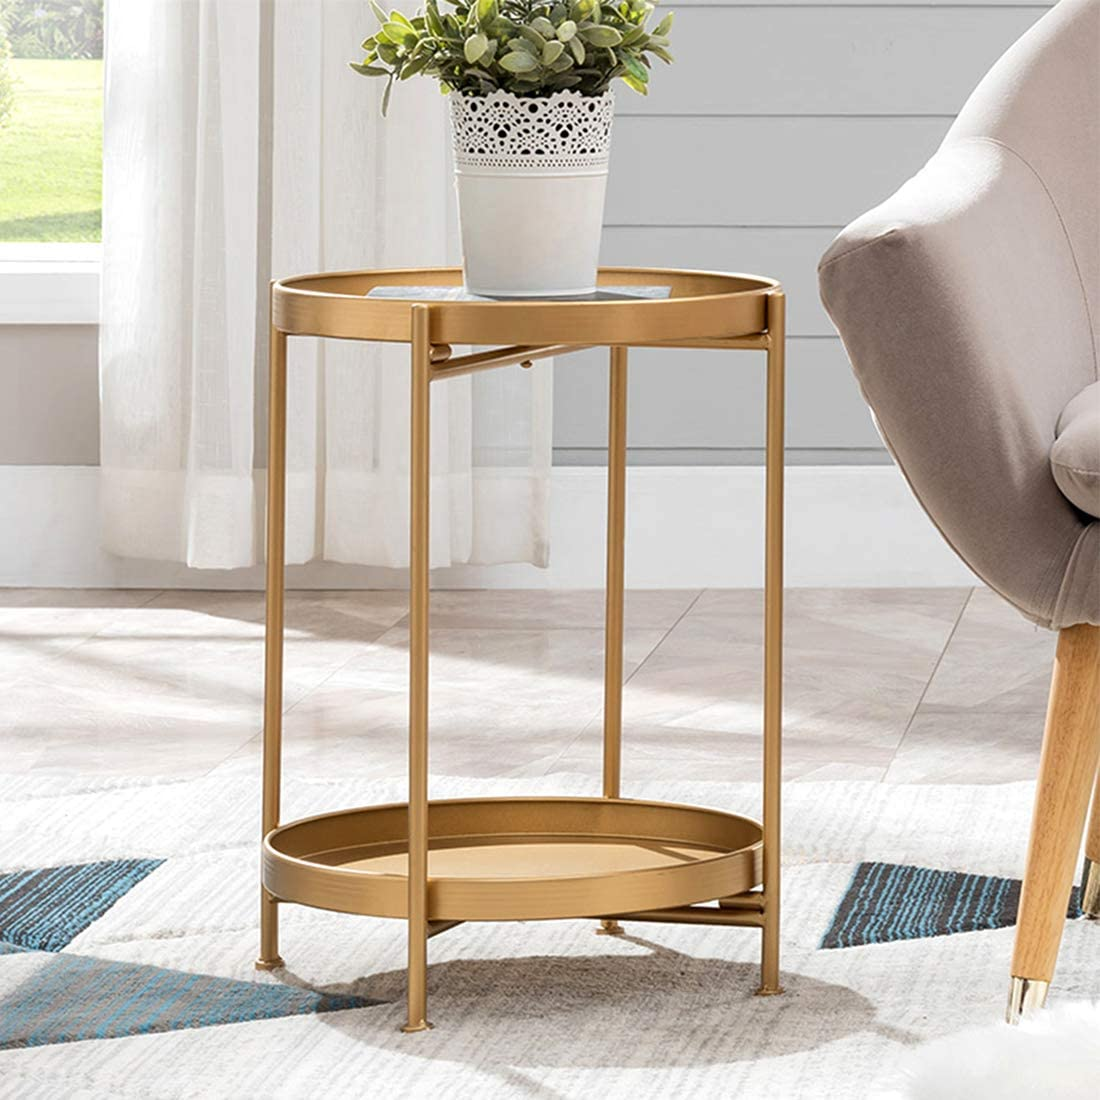 Small Round Table Metal Tray Side Table with Storage Gold Modern Nightstand for Living Room Bedroom14 Dx20 H